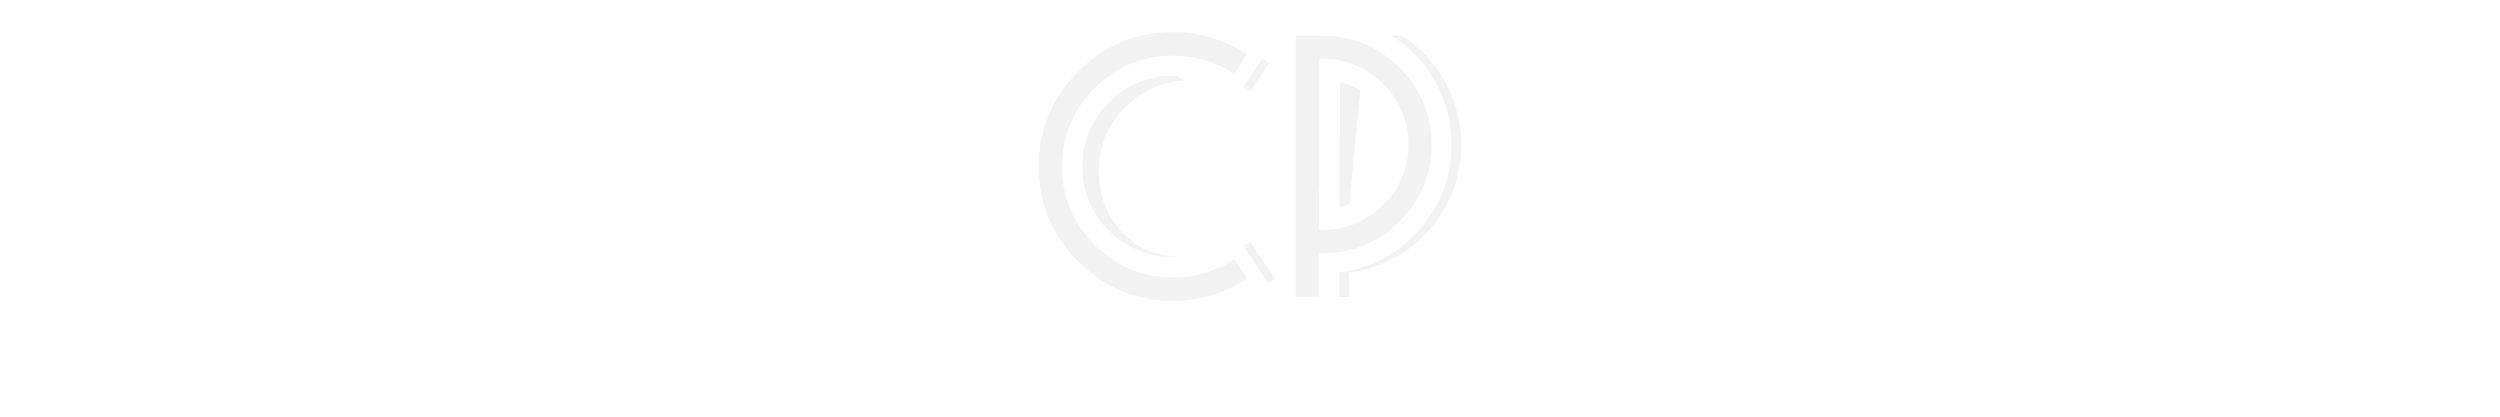 CP Simple Footer White No Background Final-01.png